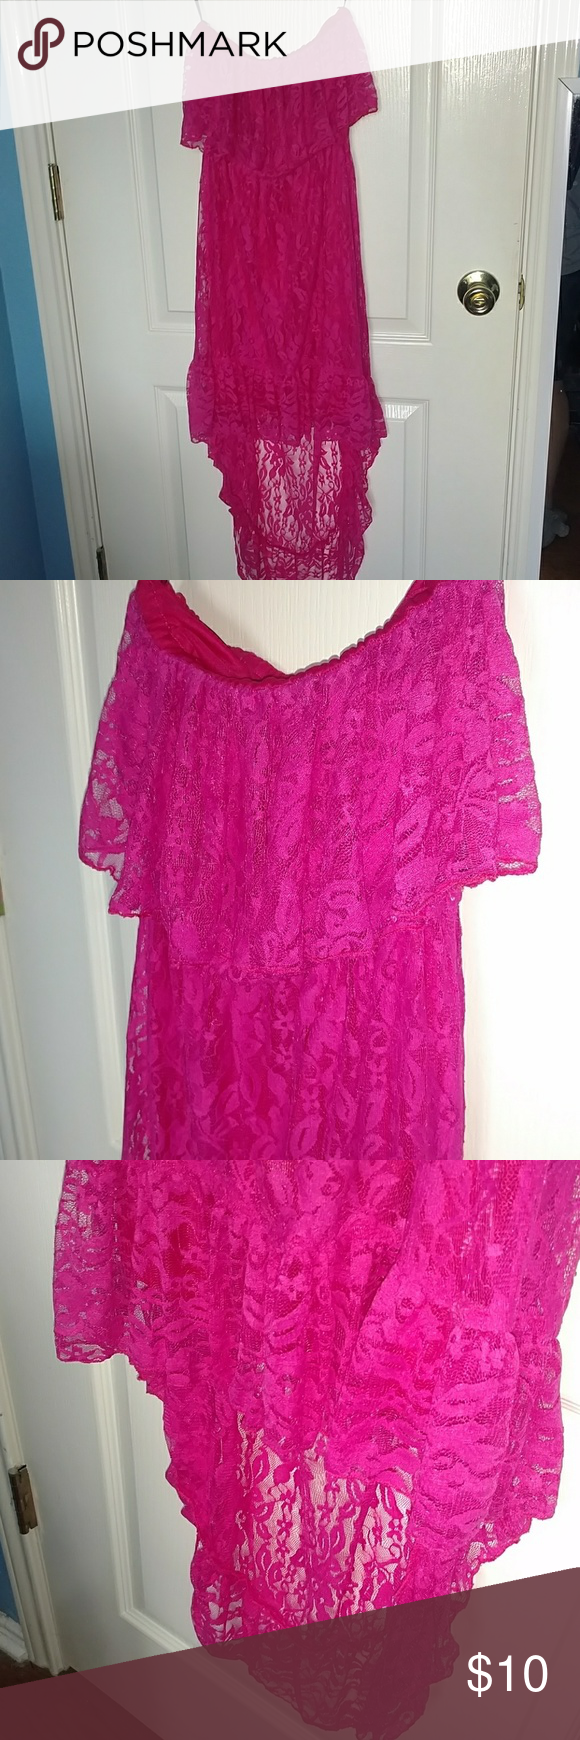 Flirty hot pink lacy strapless summer dress Very flirty and fun ...